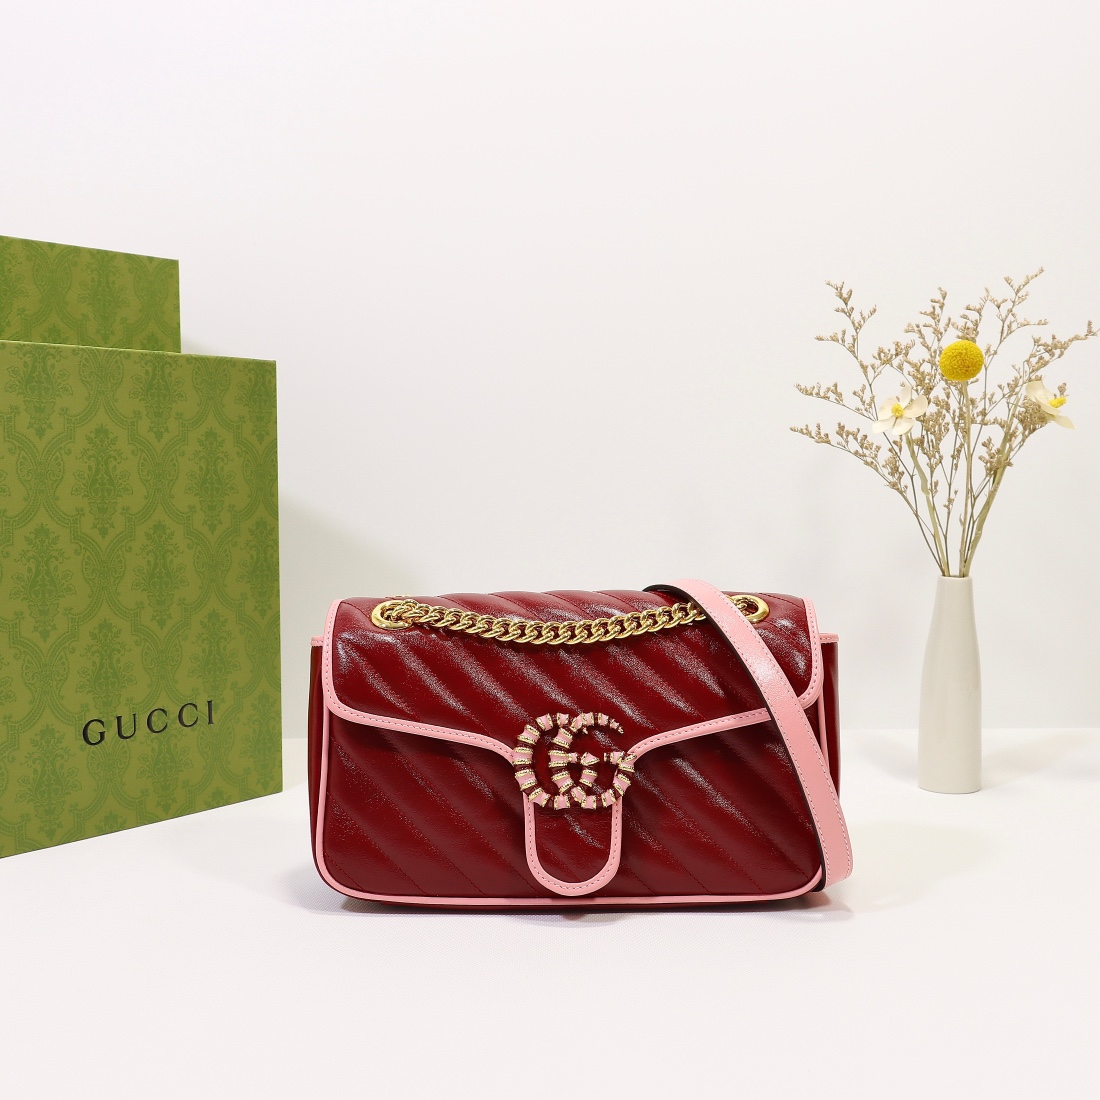 New Replica Gucci GG Beloved Marmont Shoulder Bag Red 26cm